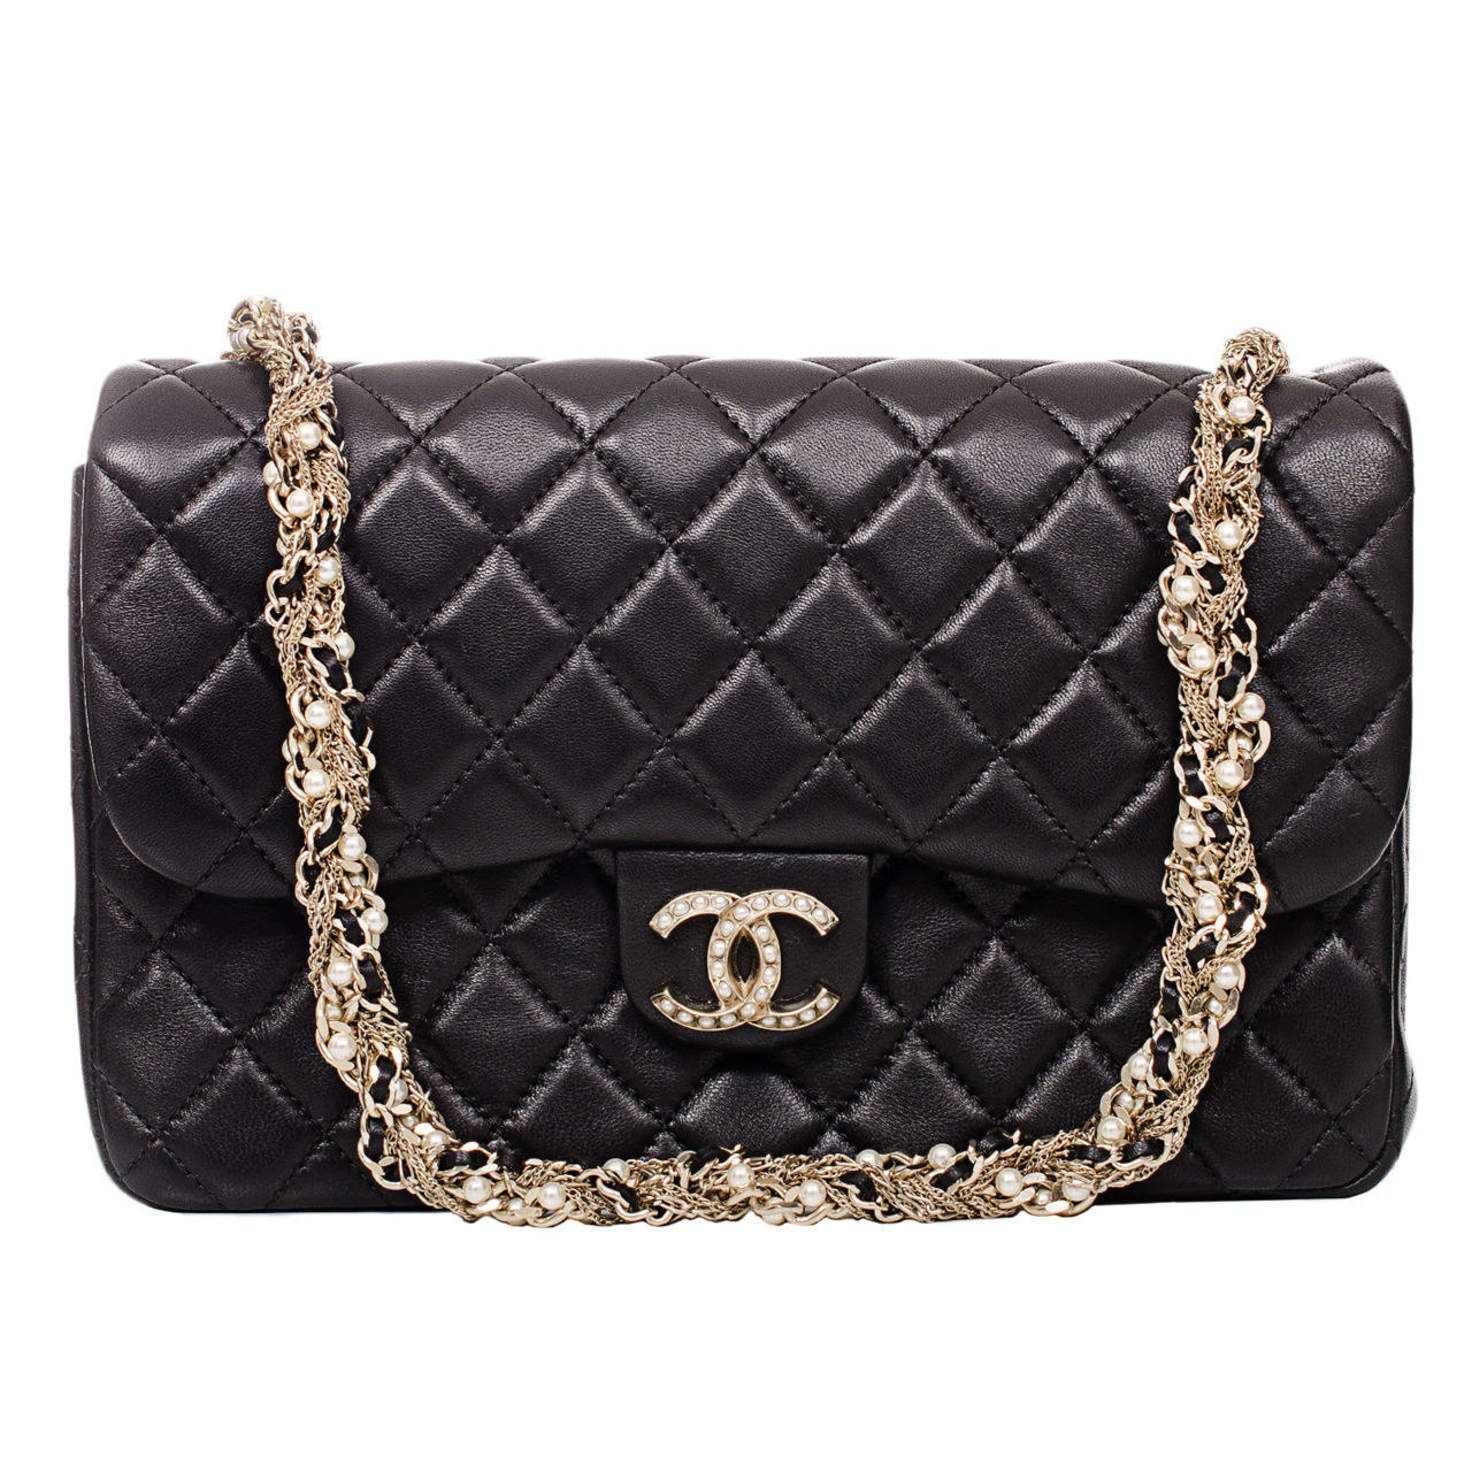 2f9199df5d97 Chanel Black Lambskin Westminster Pearl Flap Bag